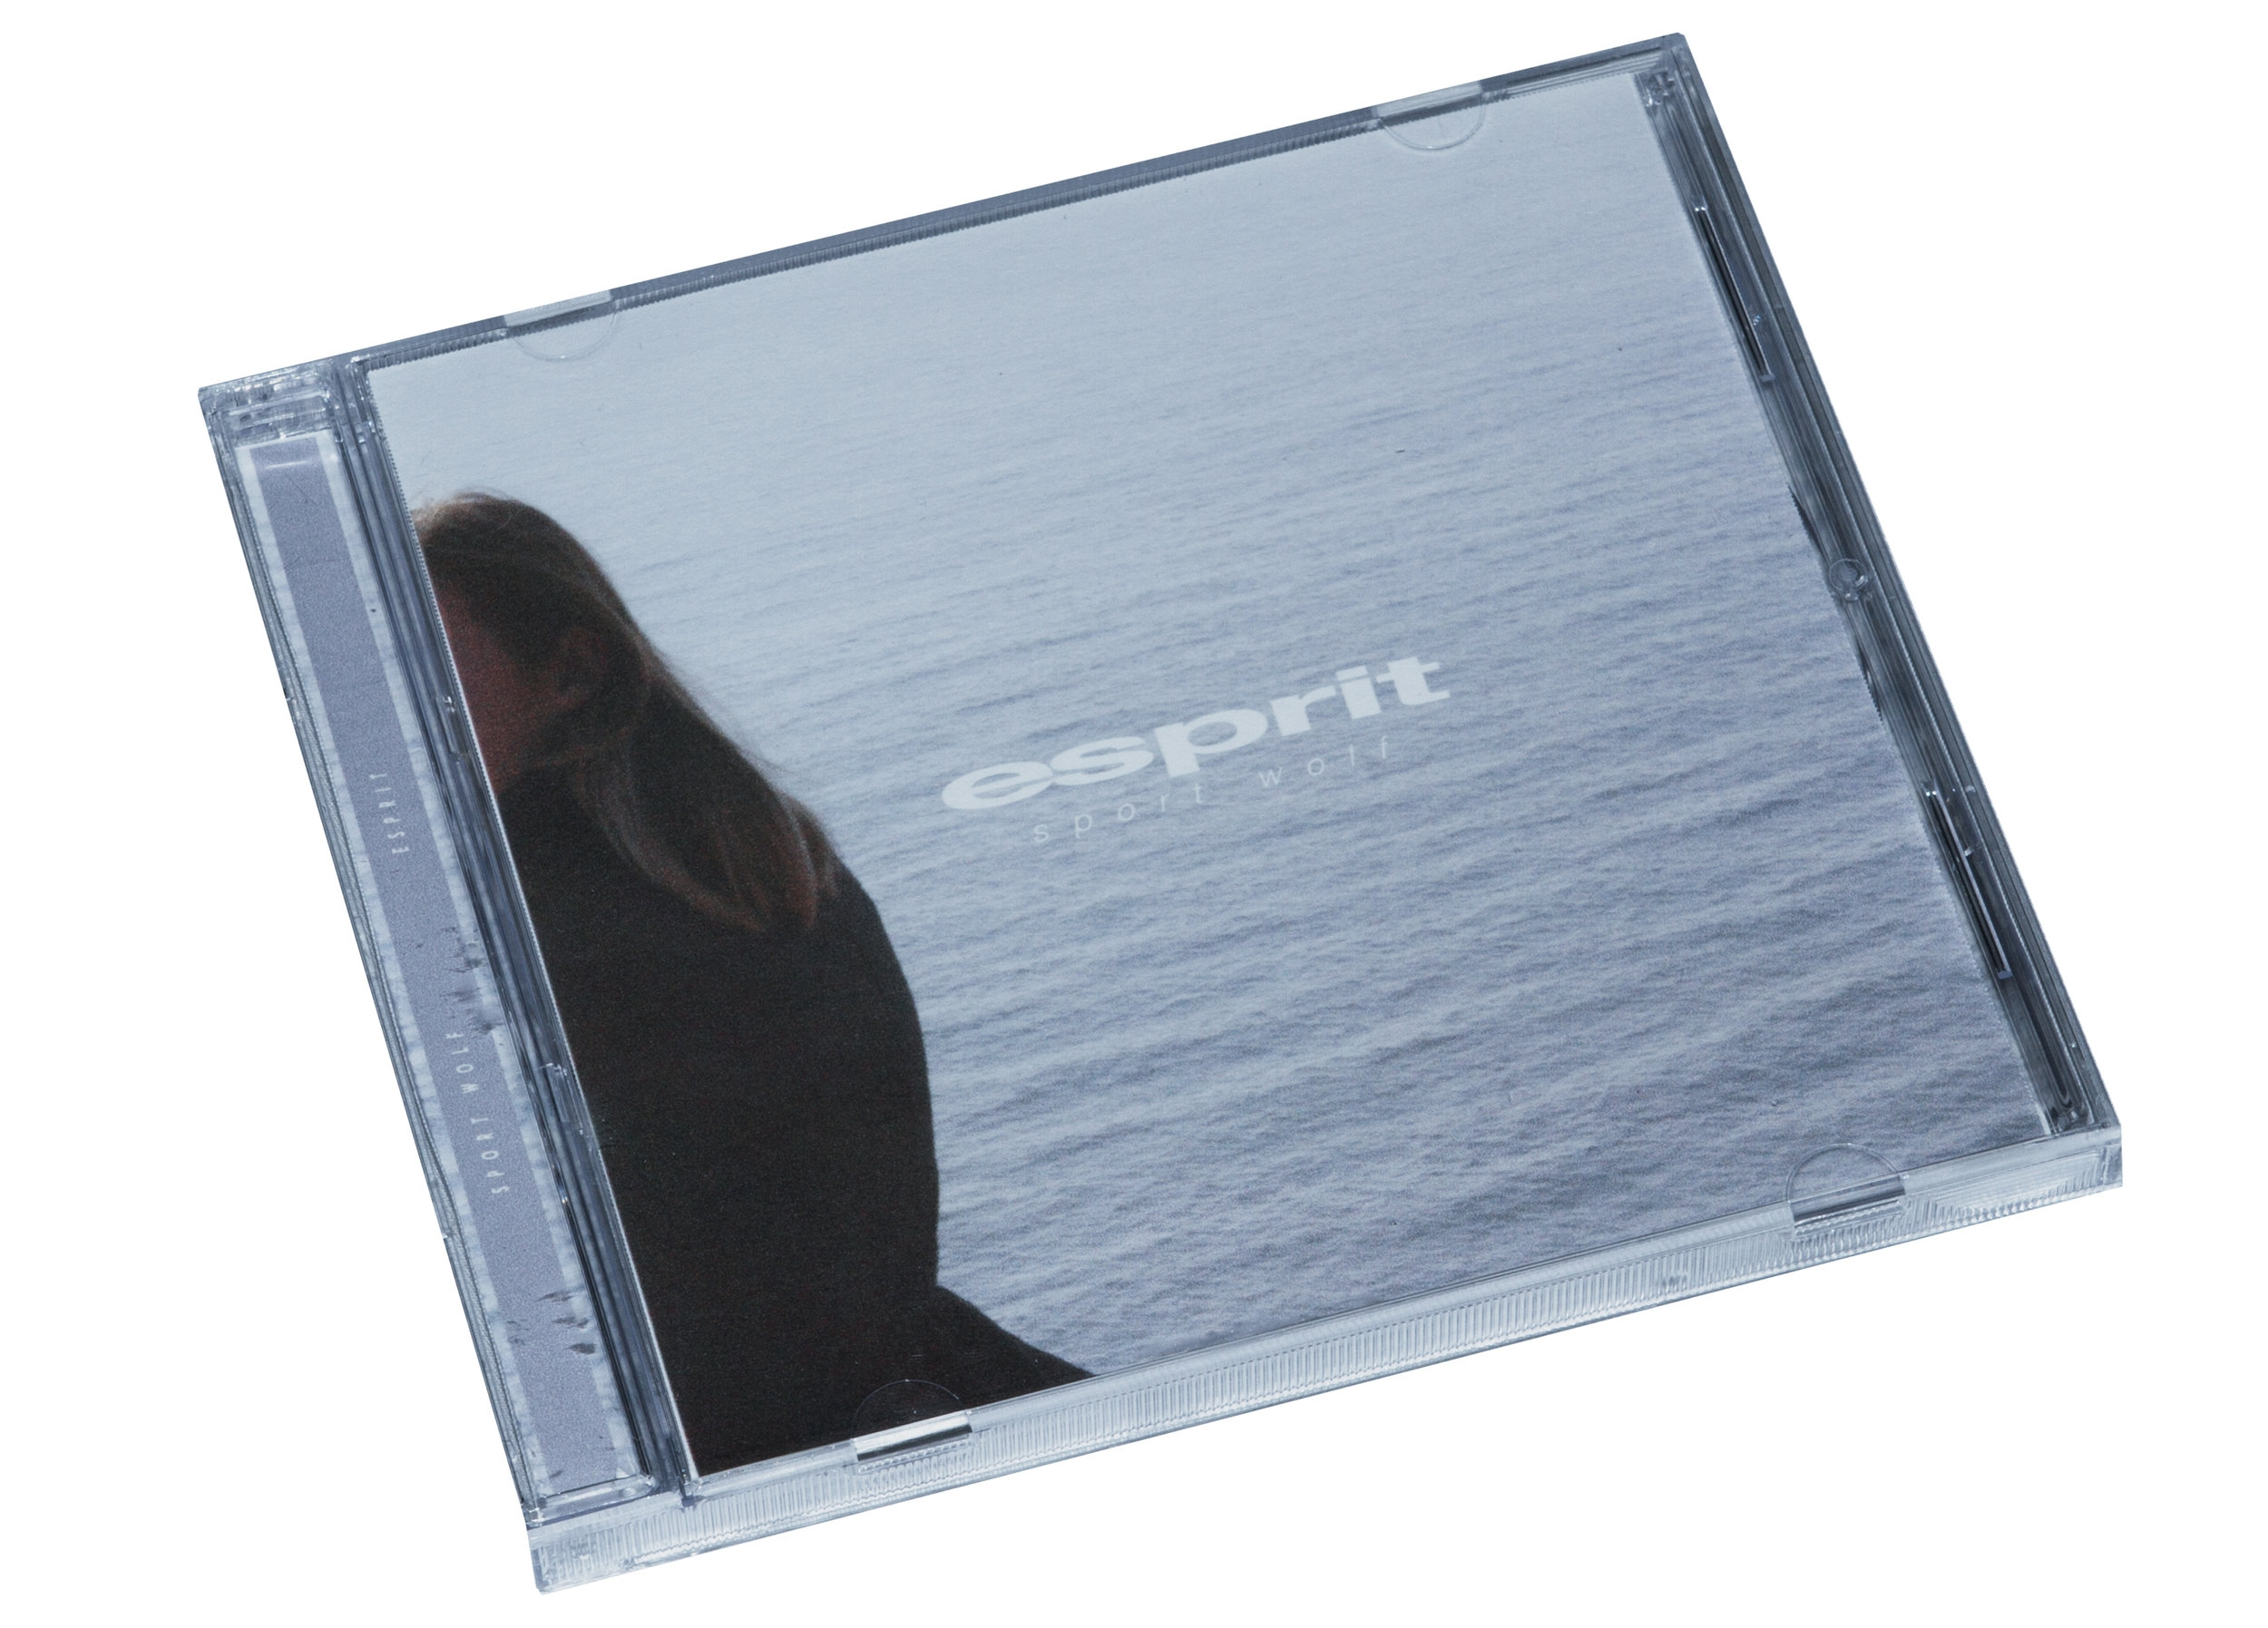 """""""Esprit"""" available on limited edition CD."""